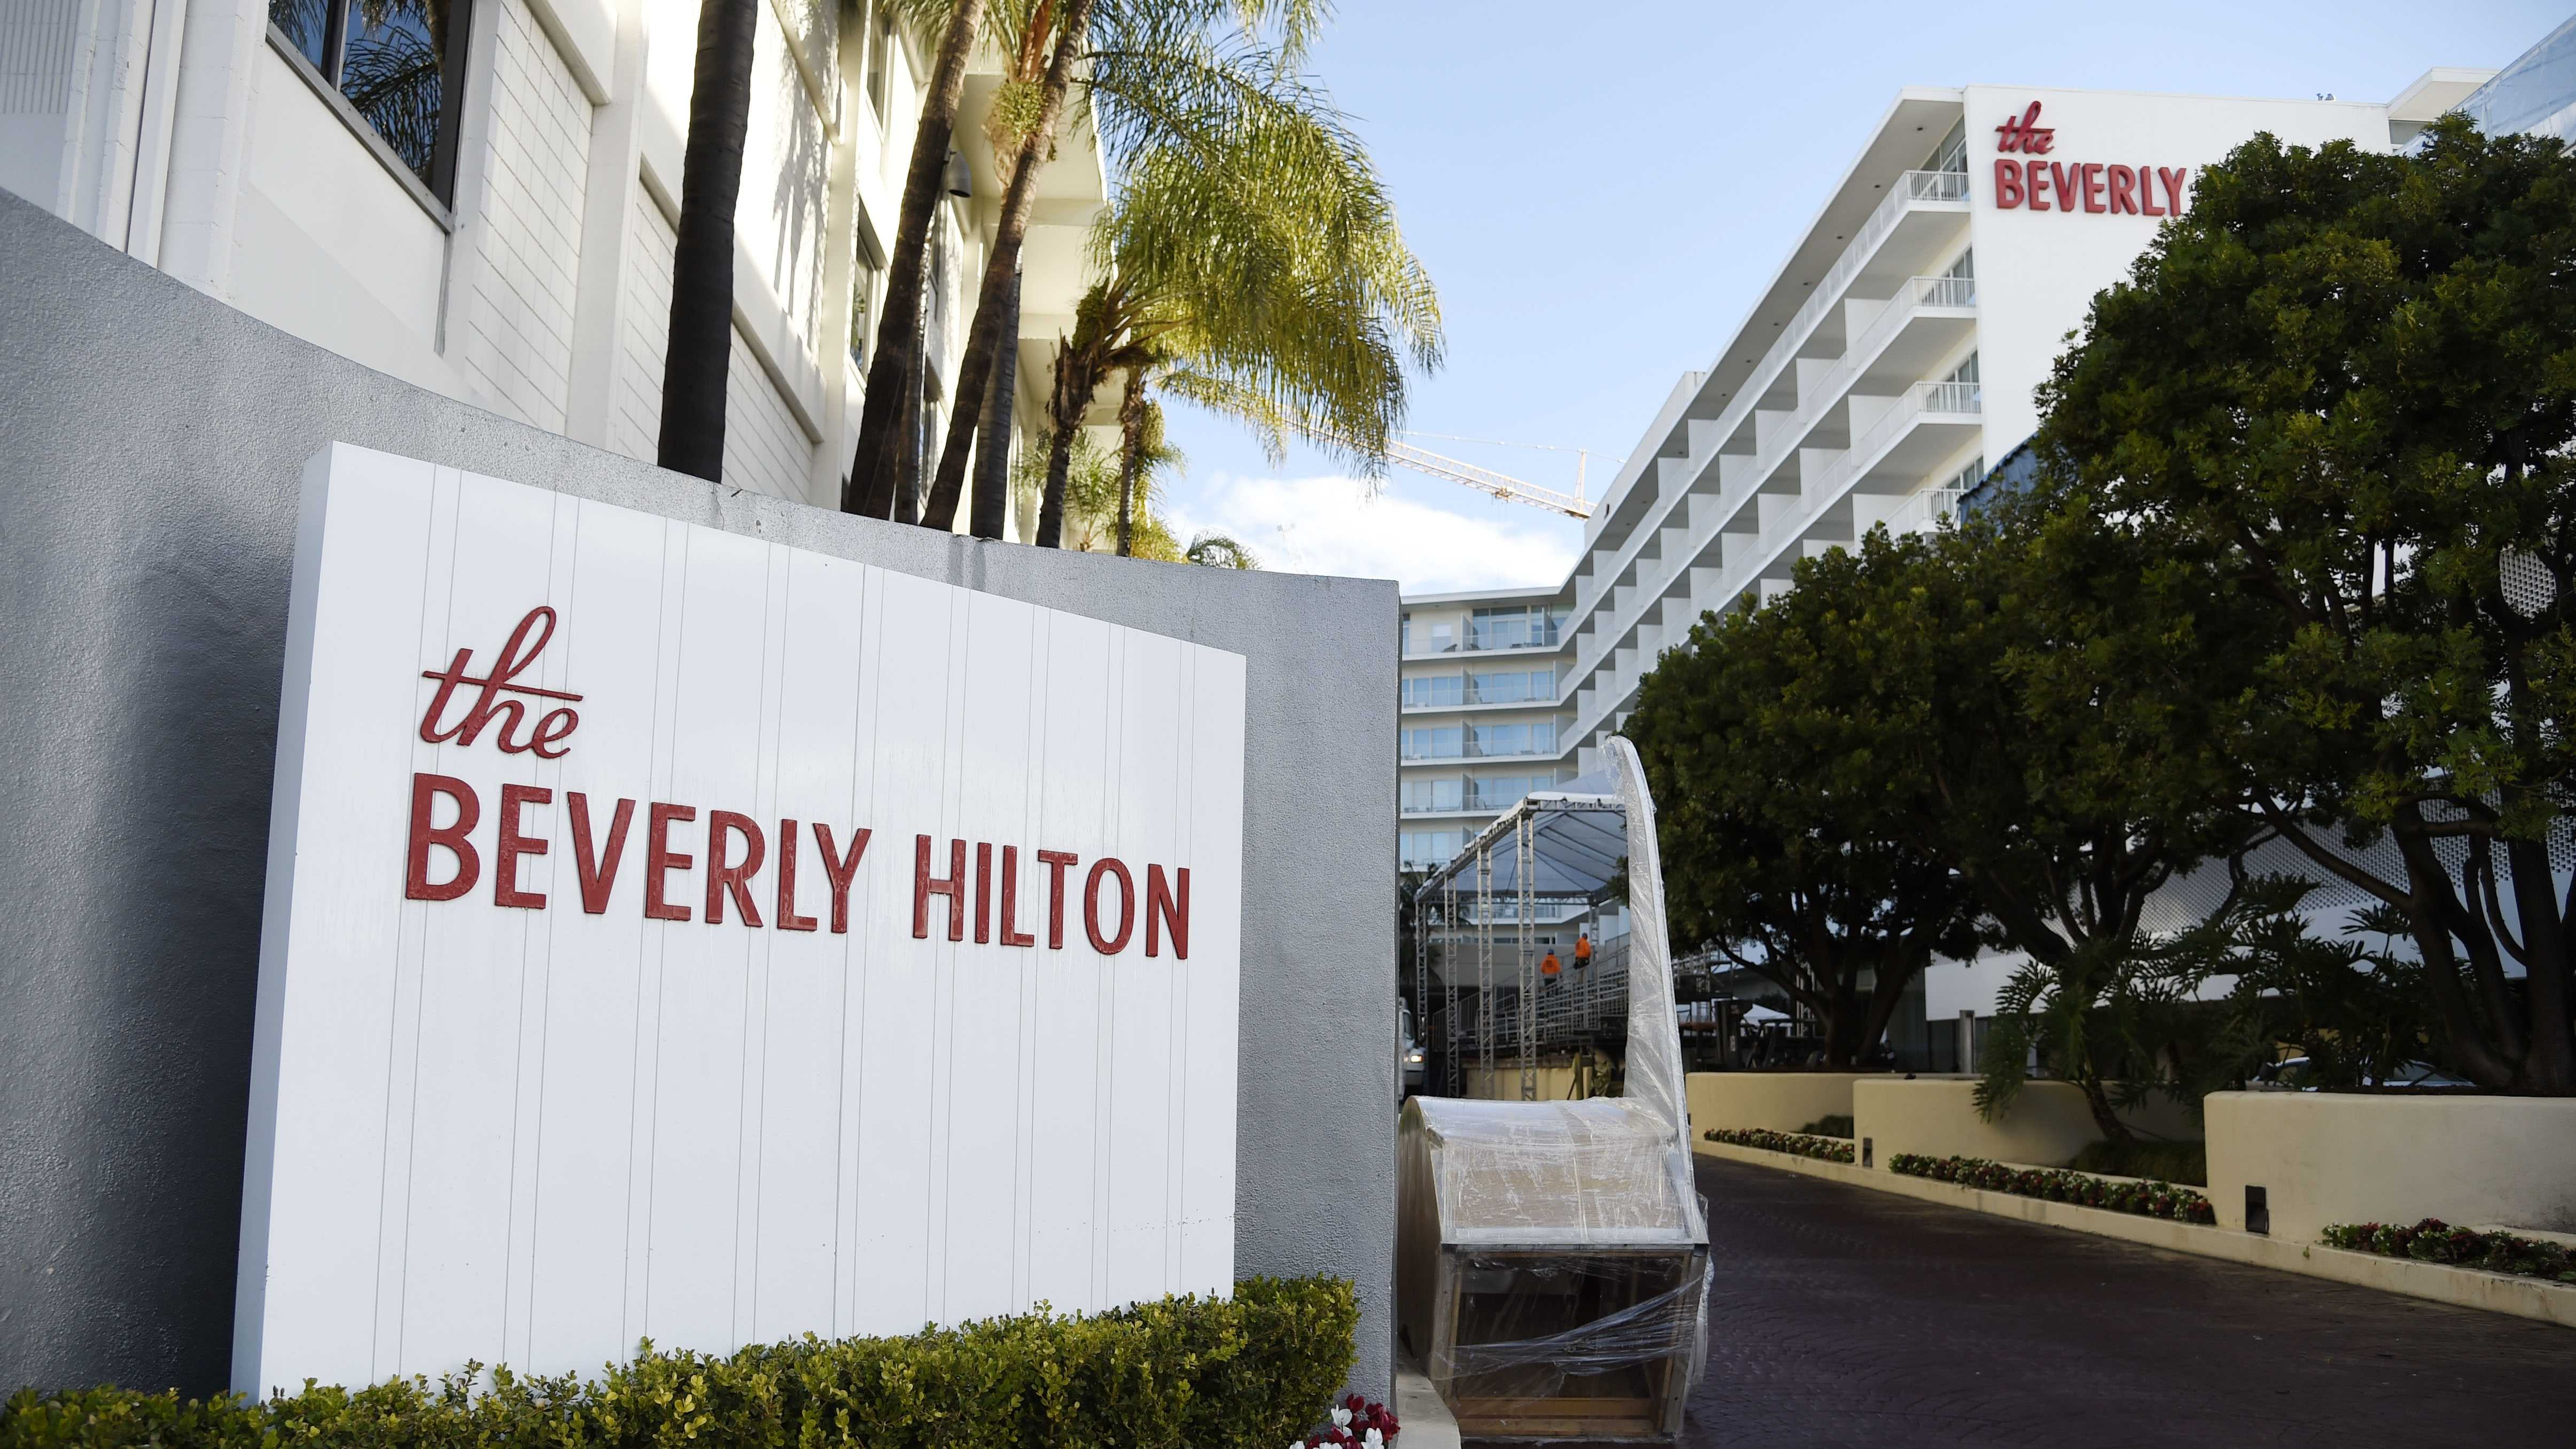 The Beverly Hilton, location of the 73rd Annual Golden Globe Awards, is seen on preview day on Thursday, Jan. 7, 2016, in Beverly Hills, Calif. The annual awards show including film and television will be held on Sunday.